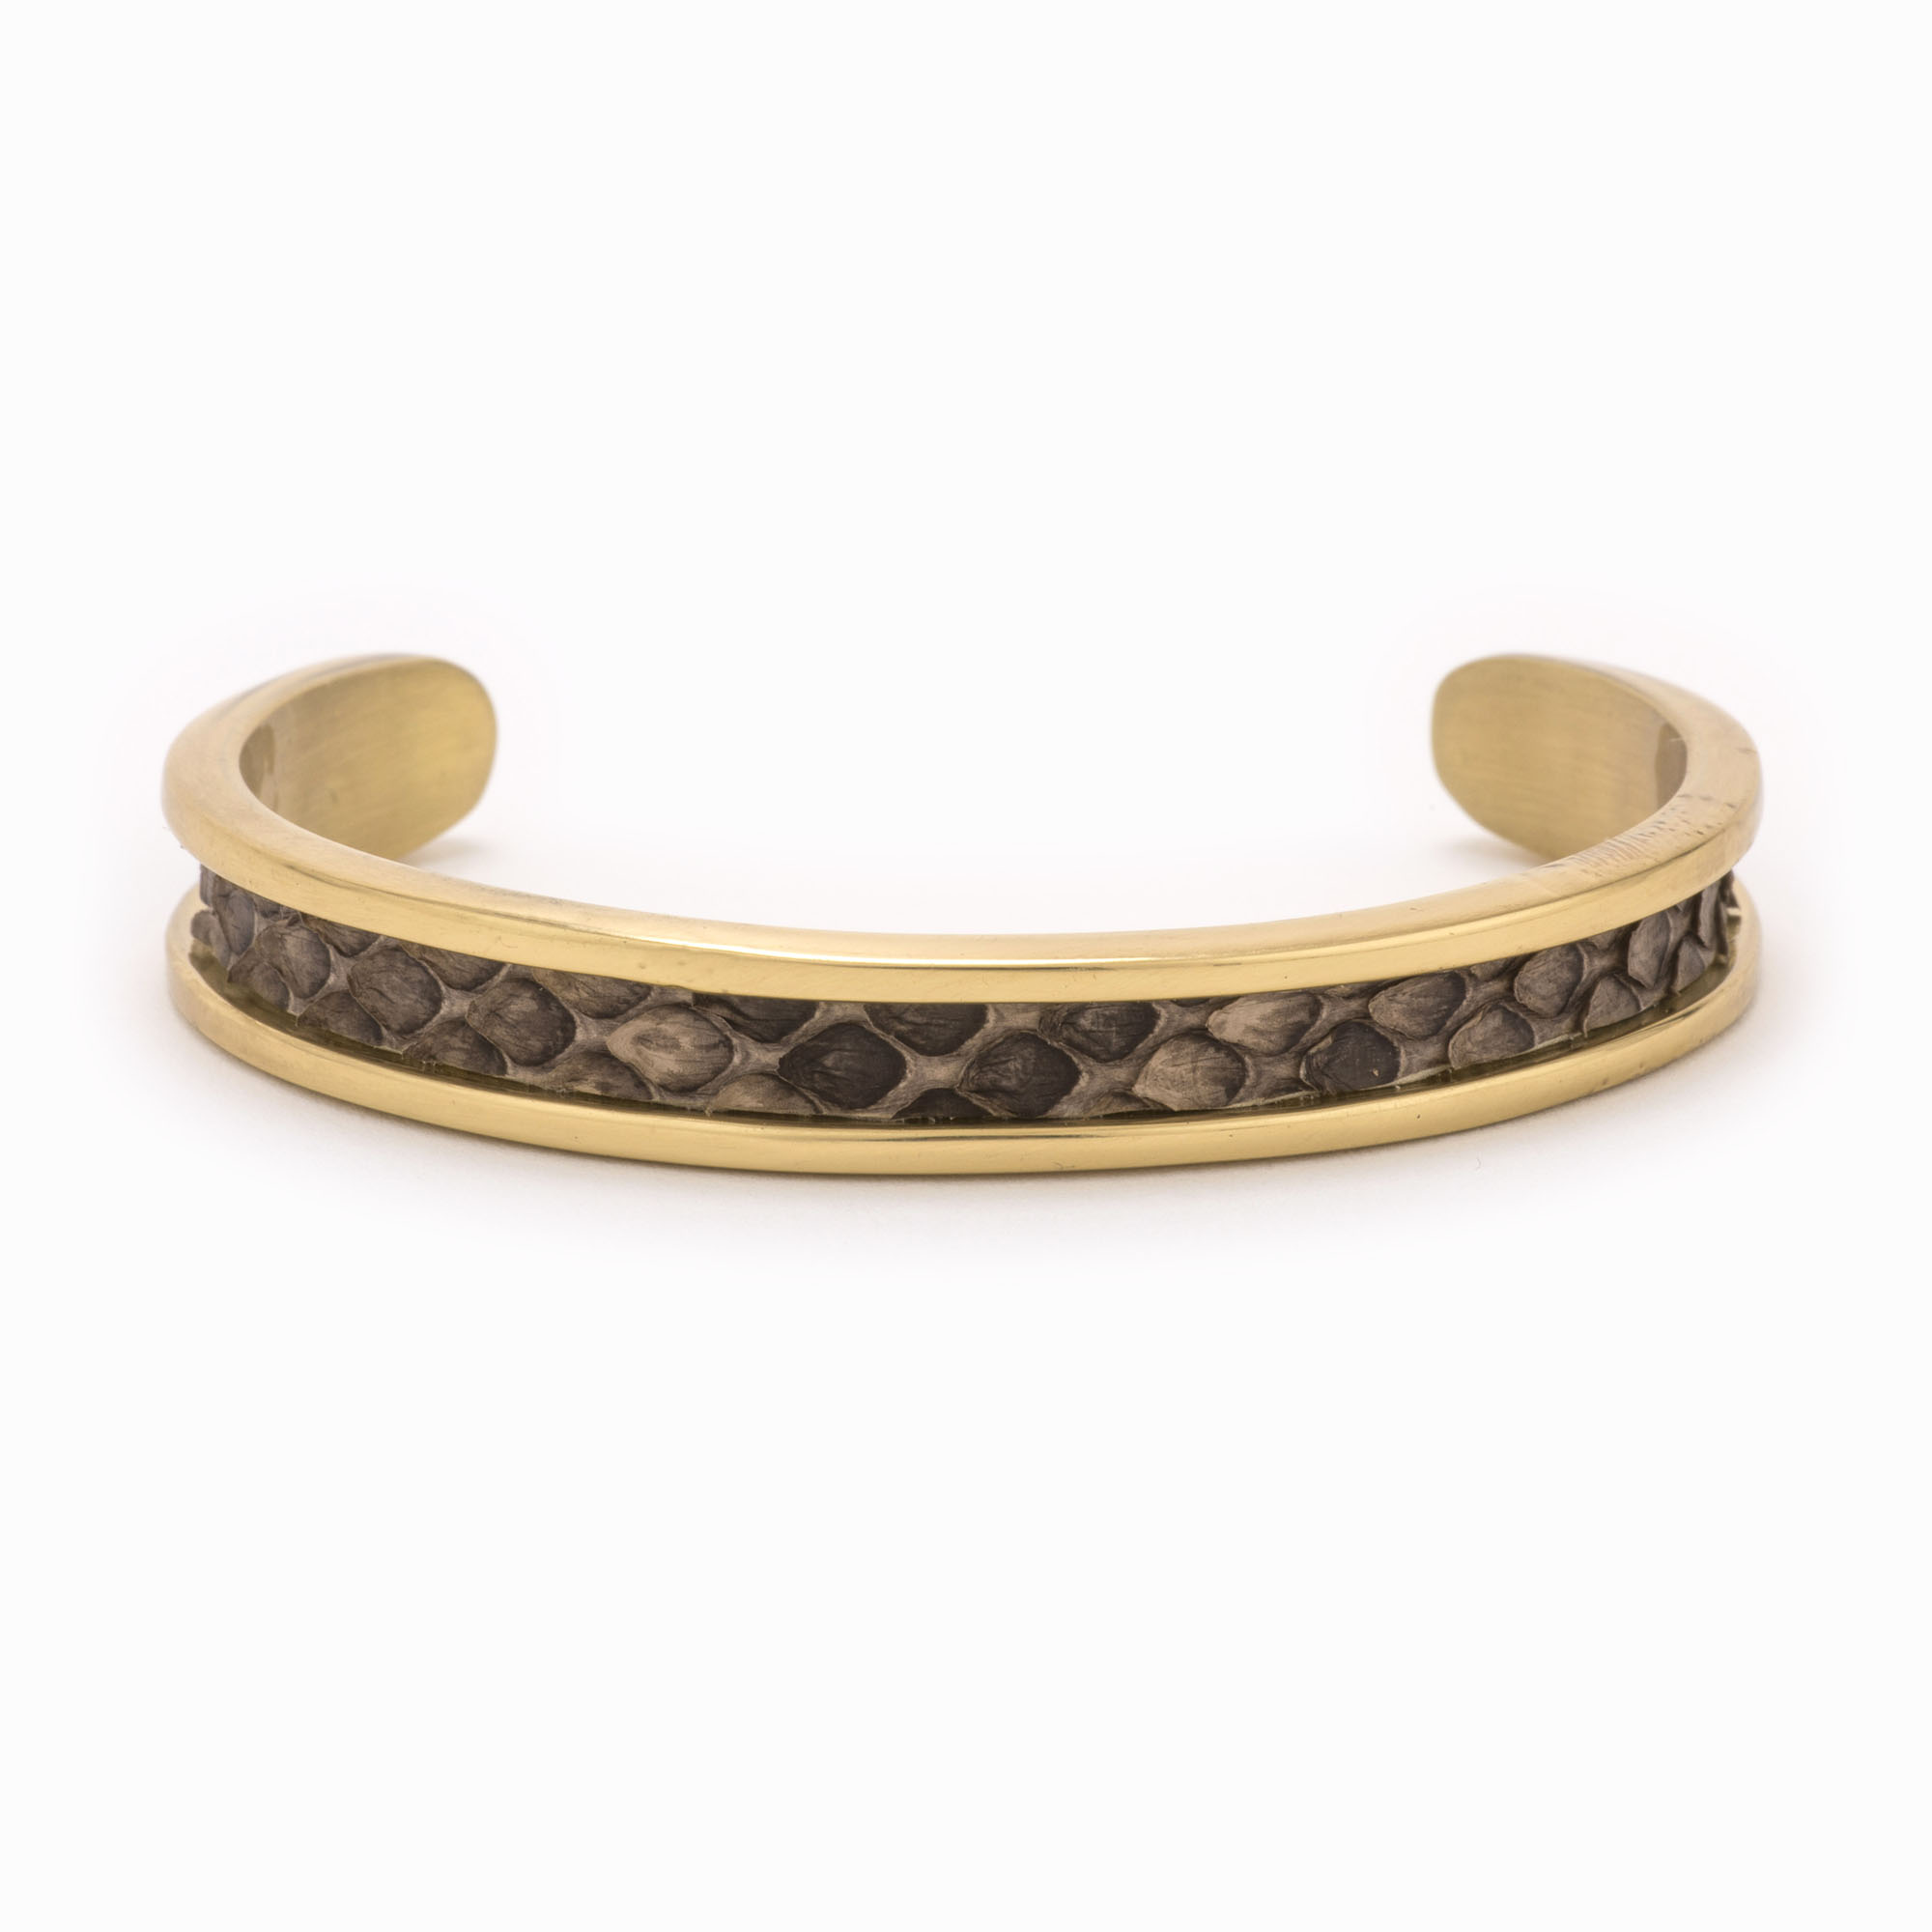 Small gold cuff and with a brown and grey snakeskin pattern.